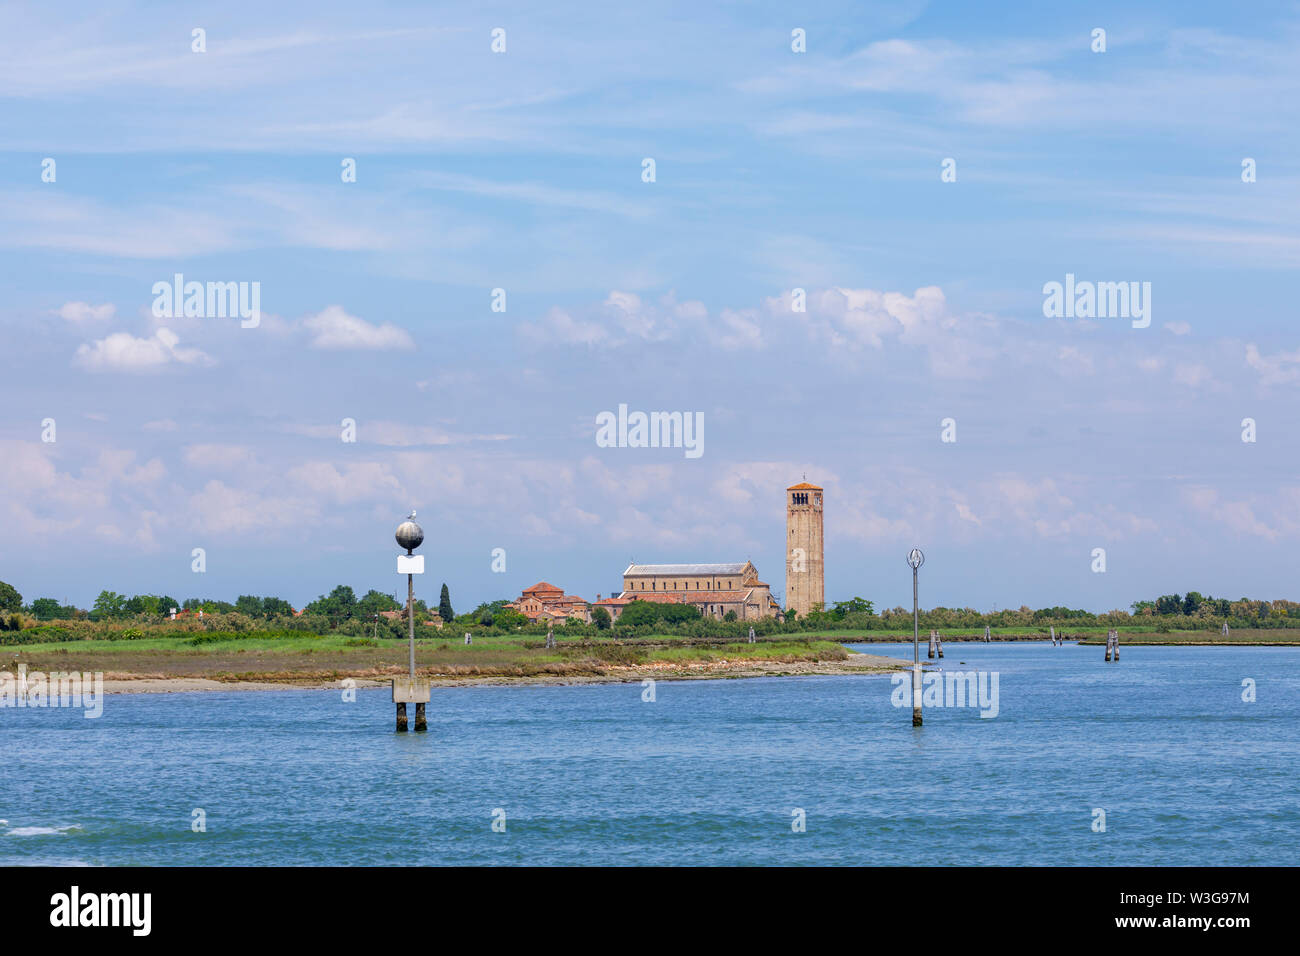 View of Torcello, a small island in Venice Lagoon, Venice, Italy with the Cathedral of Santa Maria Assunta, Santa Fosca and campanile (bell tower) - Stock Image